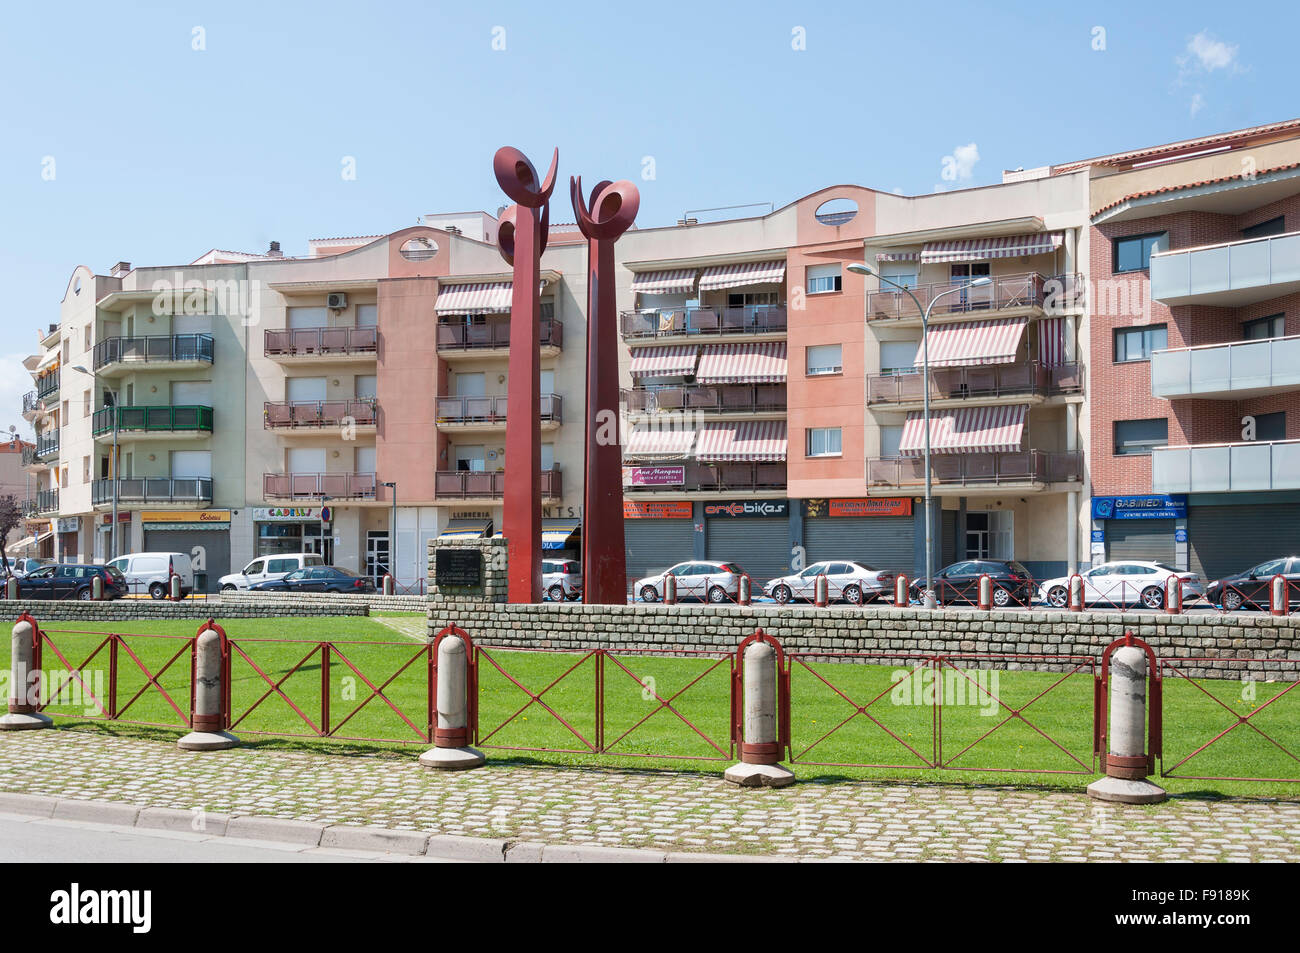 Calle Amadeo Vives, Tordera, Maresme County, Province of Barcelona, Catalonia, Spain - Stock Image